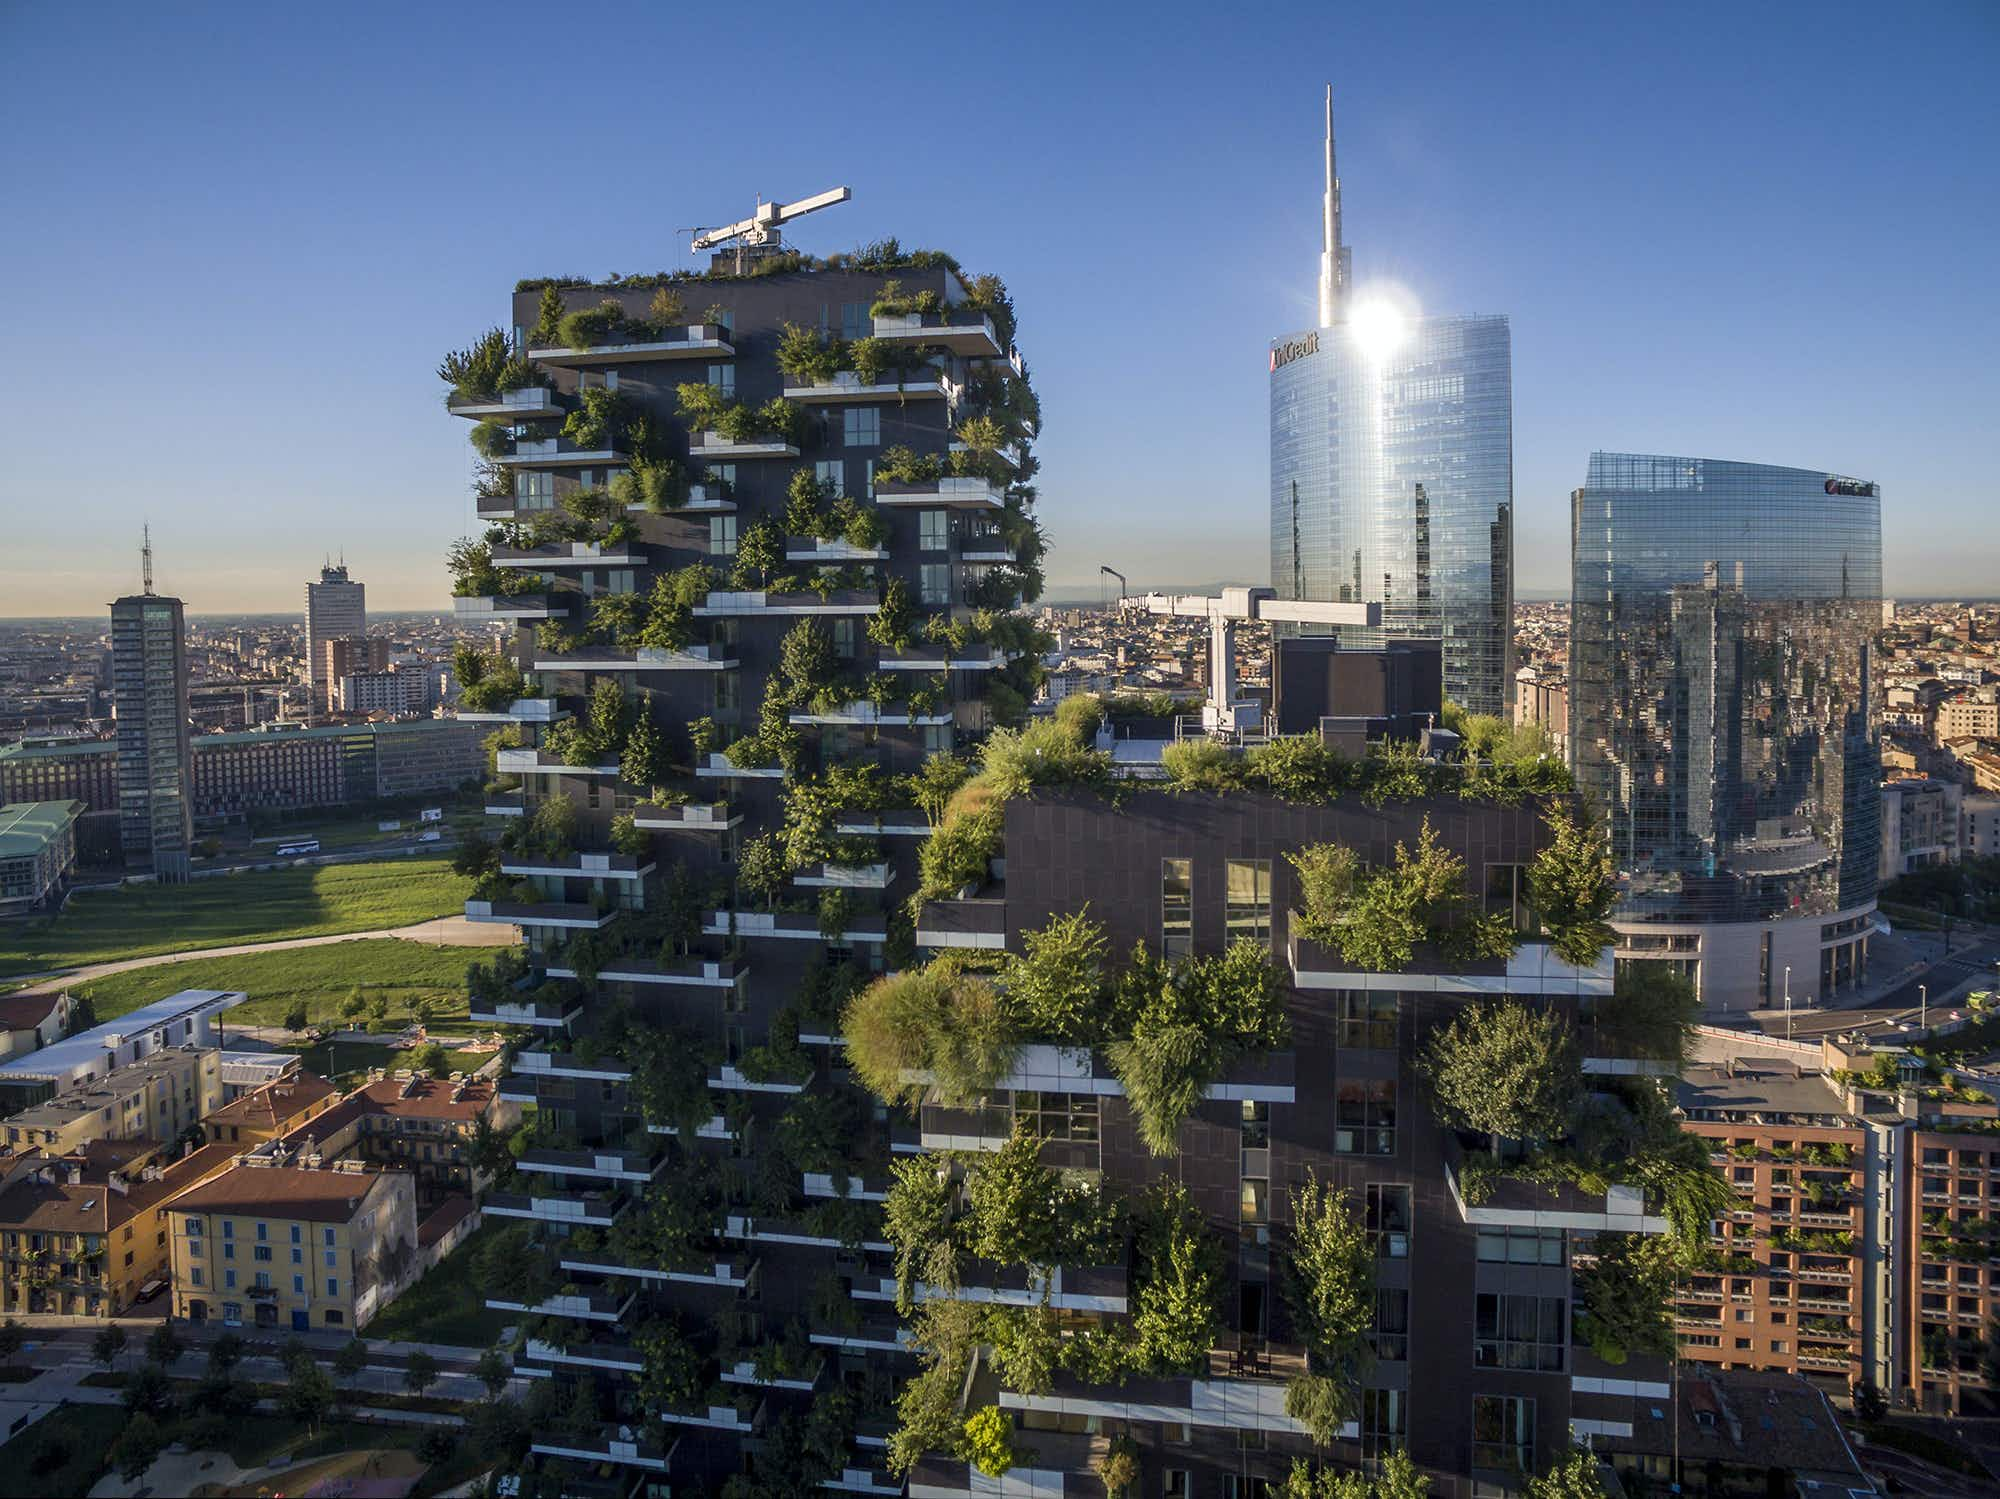 Milan's high-rise Vertical Forest takes root